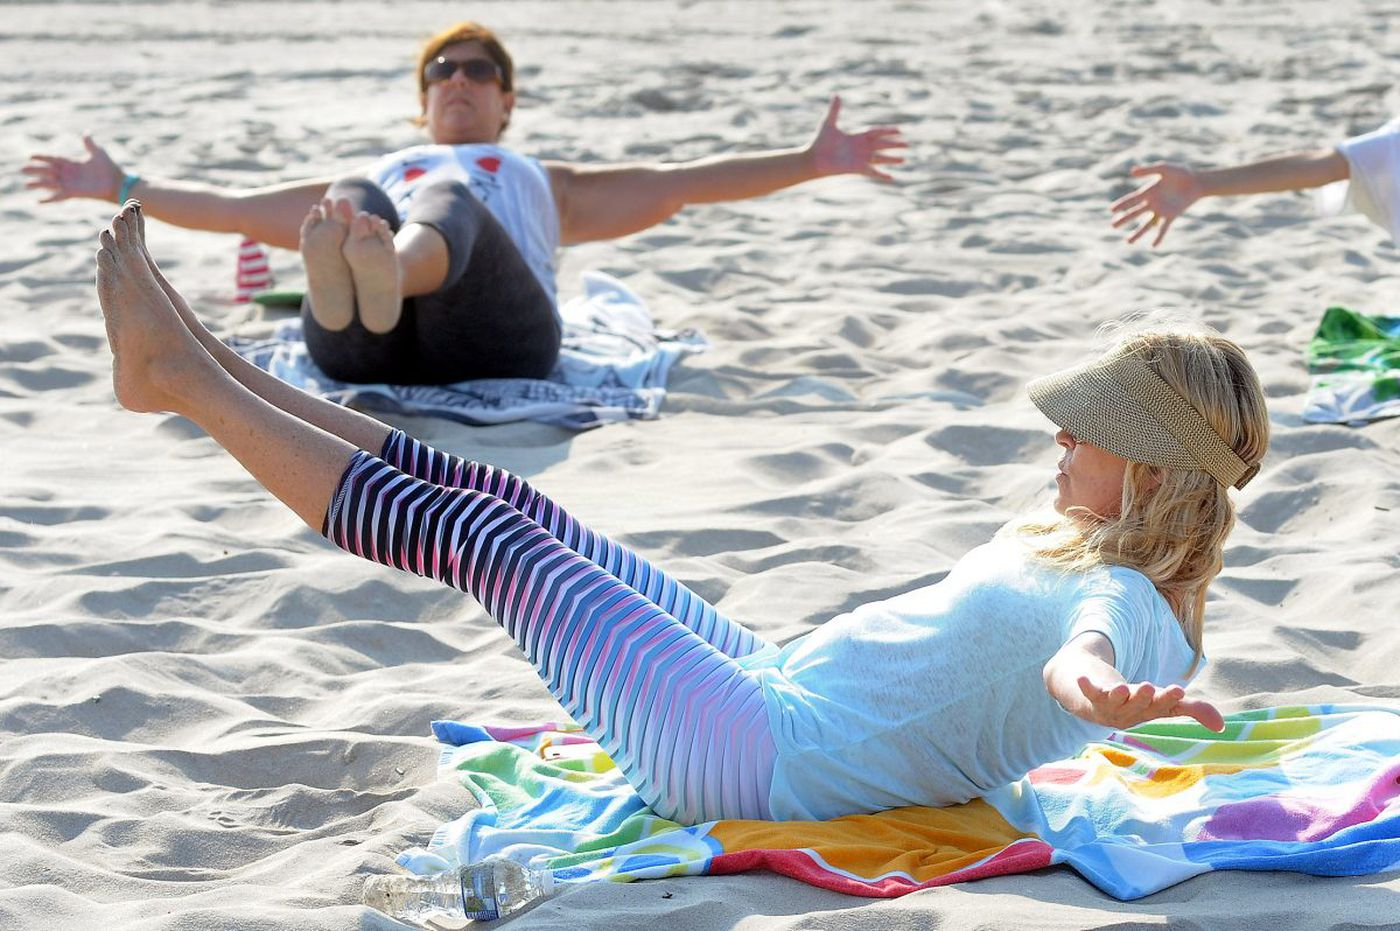 On vacation at LBI, who wants an intense yoga boot camp? New Yorkers, that's who